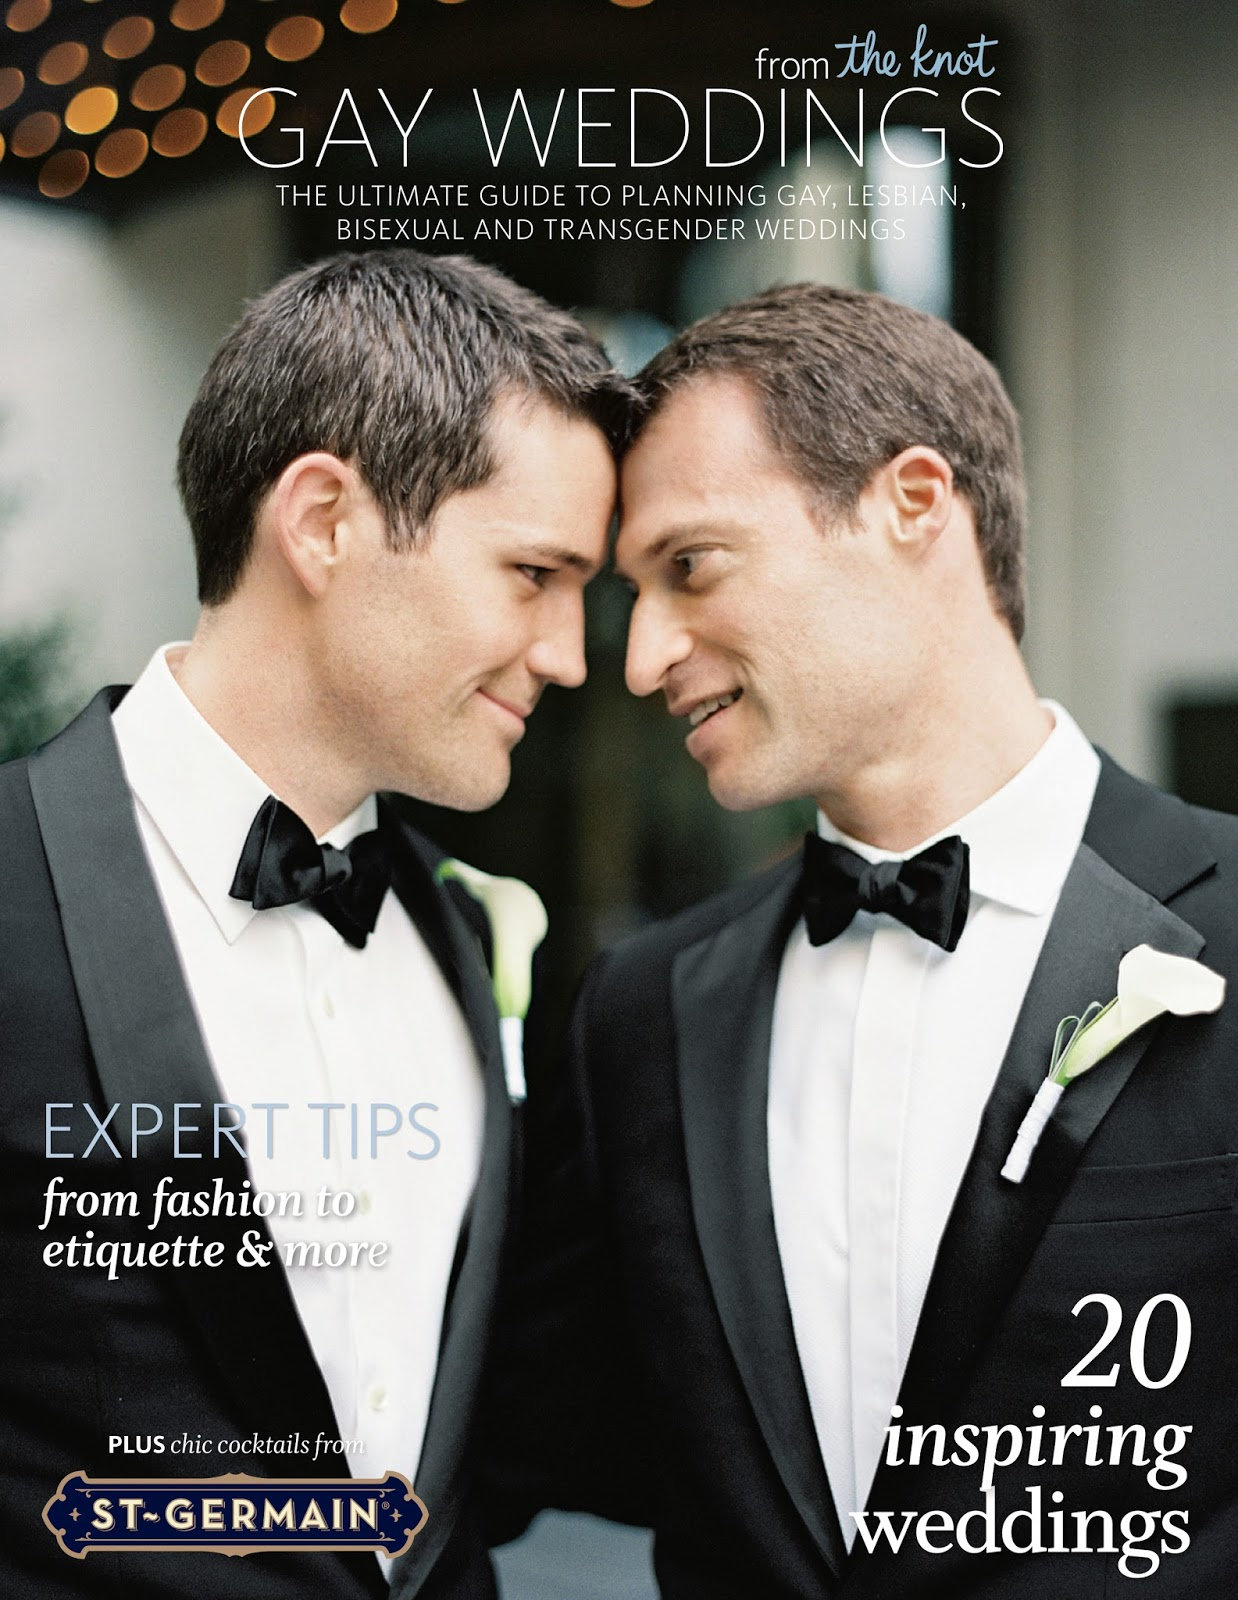 ... Hotel SAME SEX WEDDING in The KNOT ~ ULTIMATE GUIDE TO GAY WEDDINGS